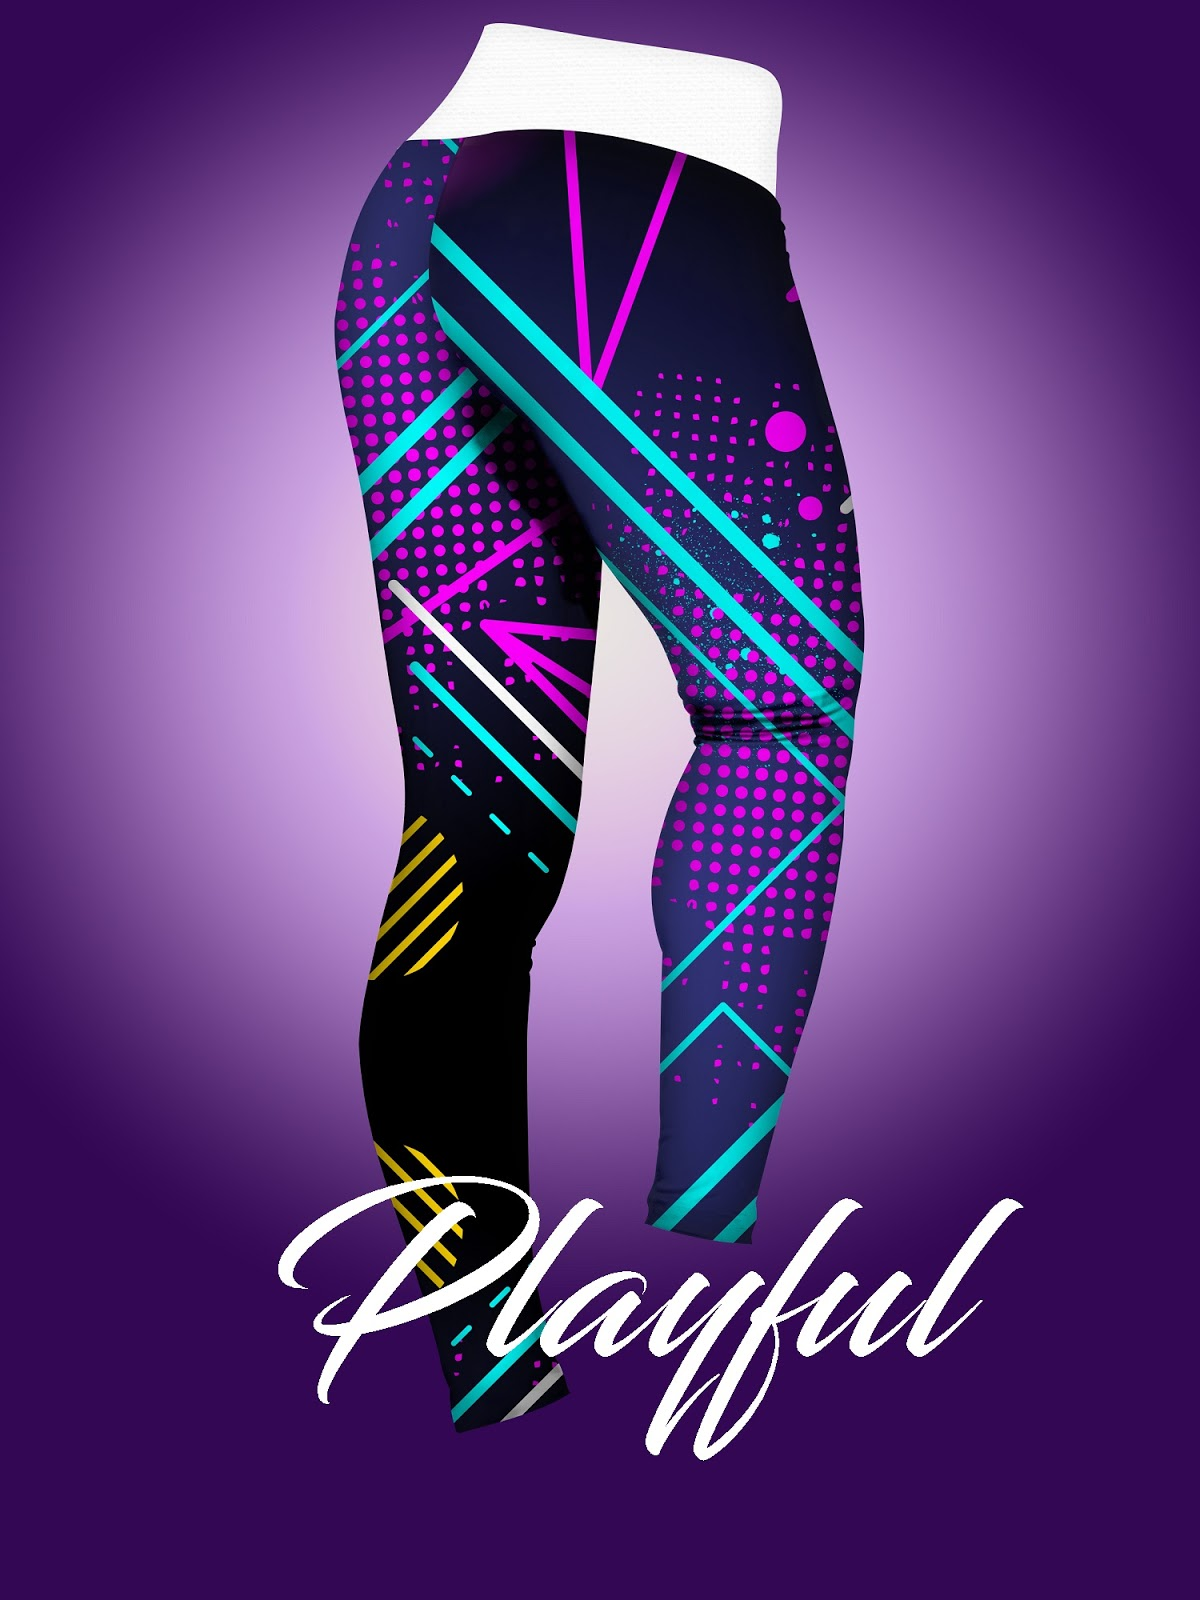 Vibrant leggings mock up blue leggings stylish leggings purple leggings playful leggings premium leggings photoshop mock up colorful leggings download